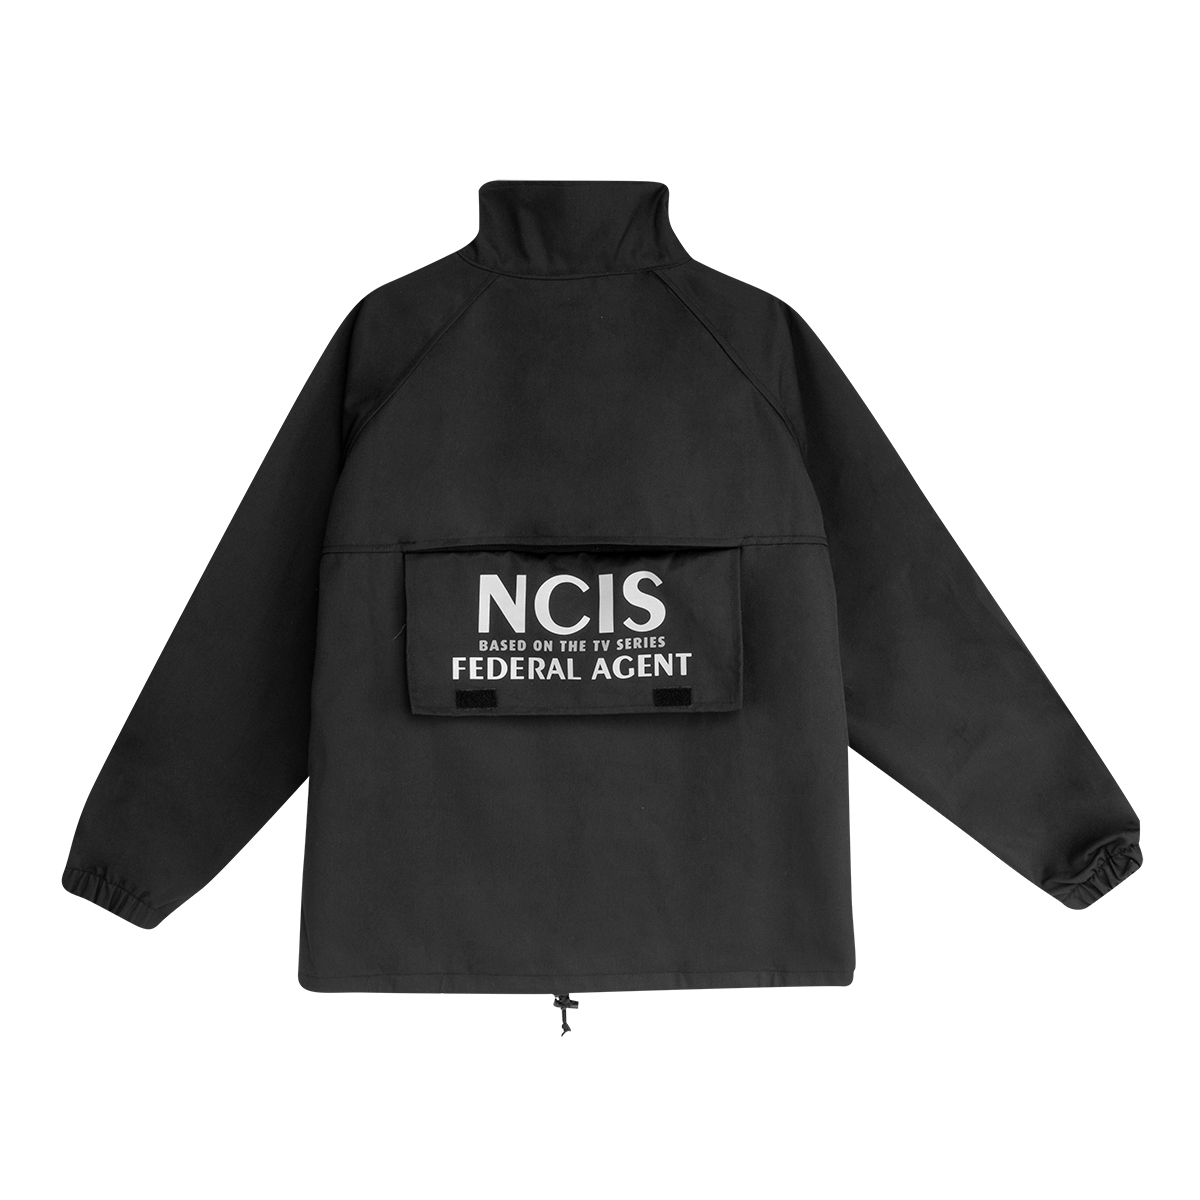 NCIS Federal Agent Jacket